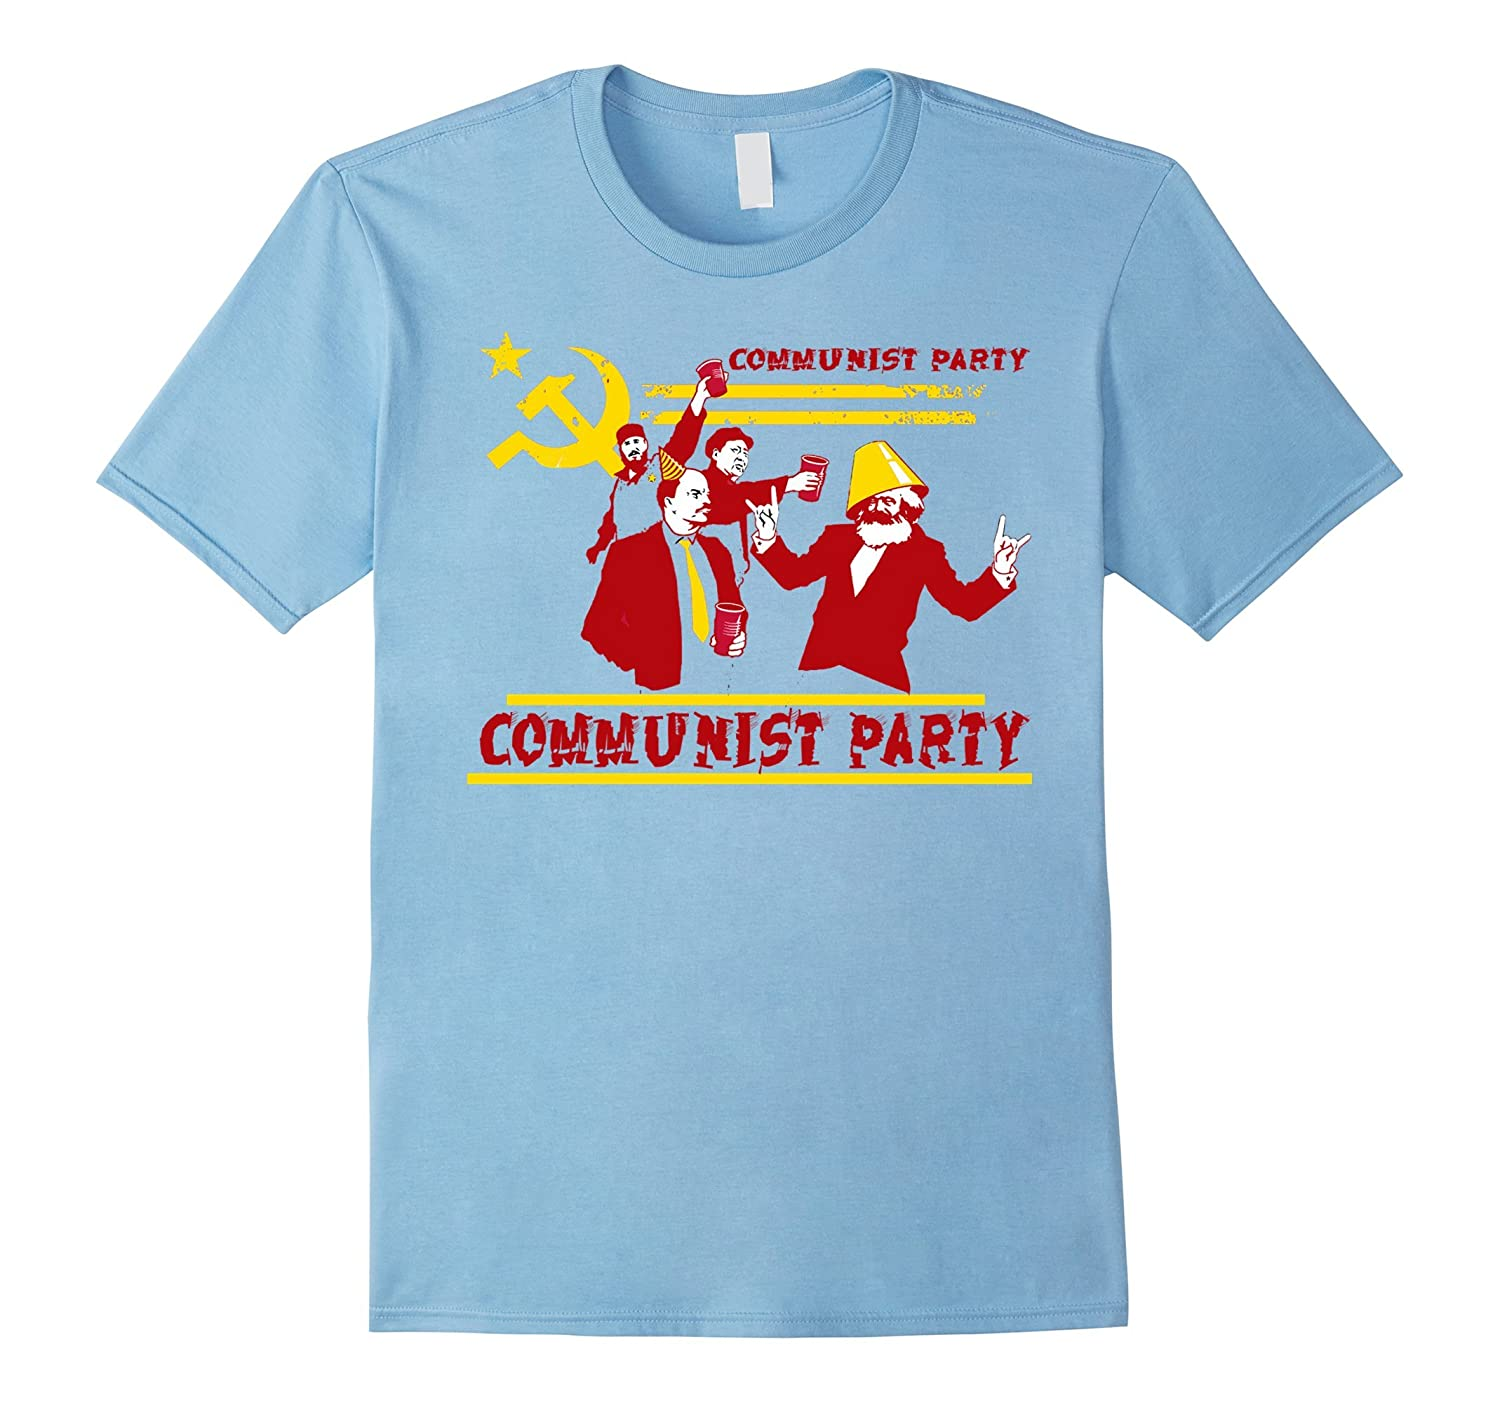 7a5eac63 TEE – The Communist Party T-Shirt-CD – Canditee